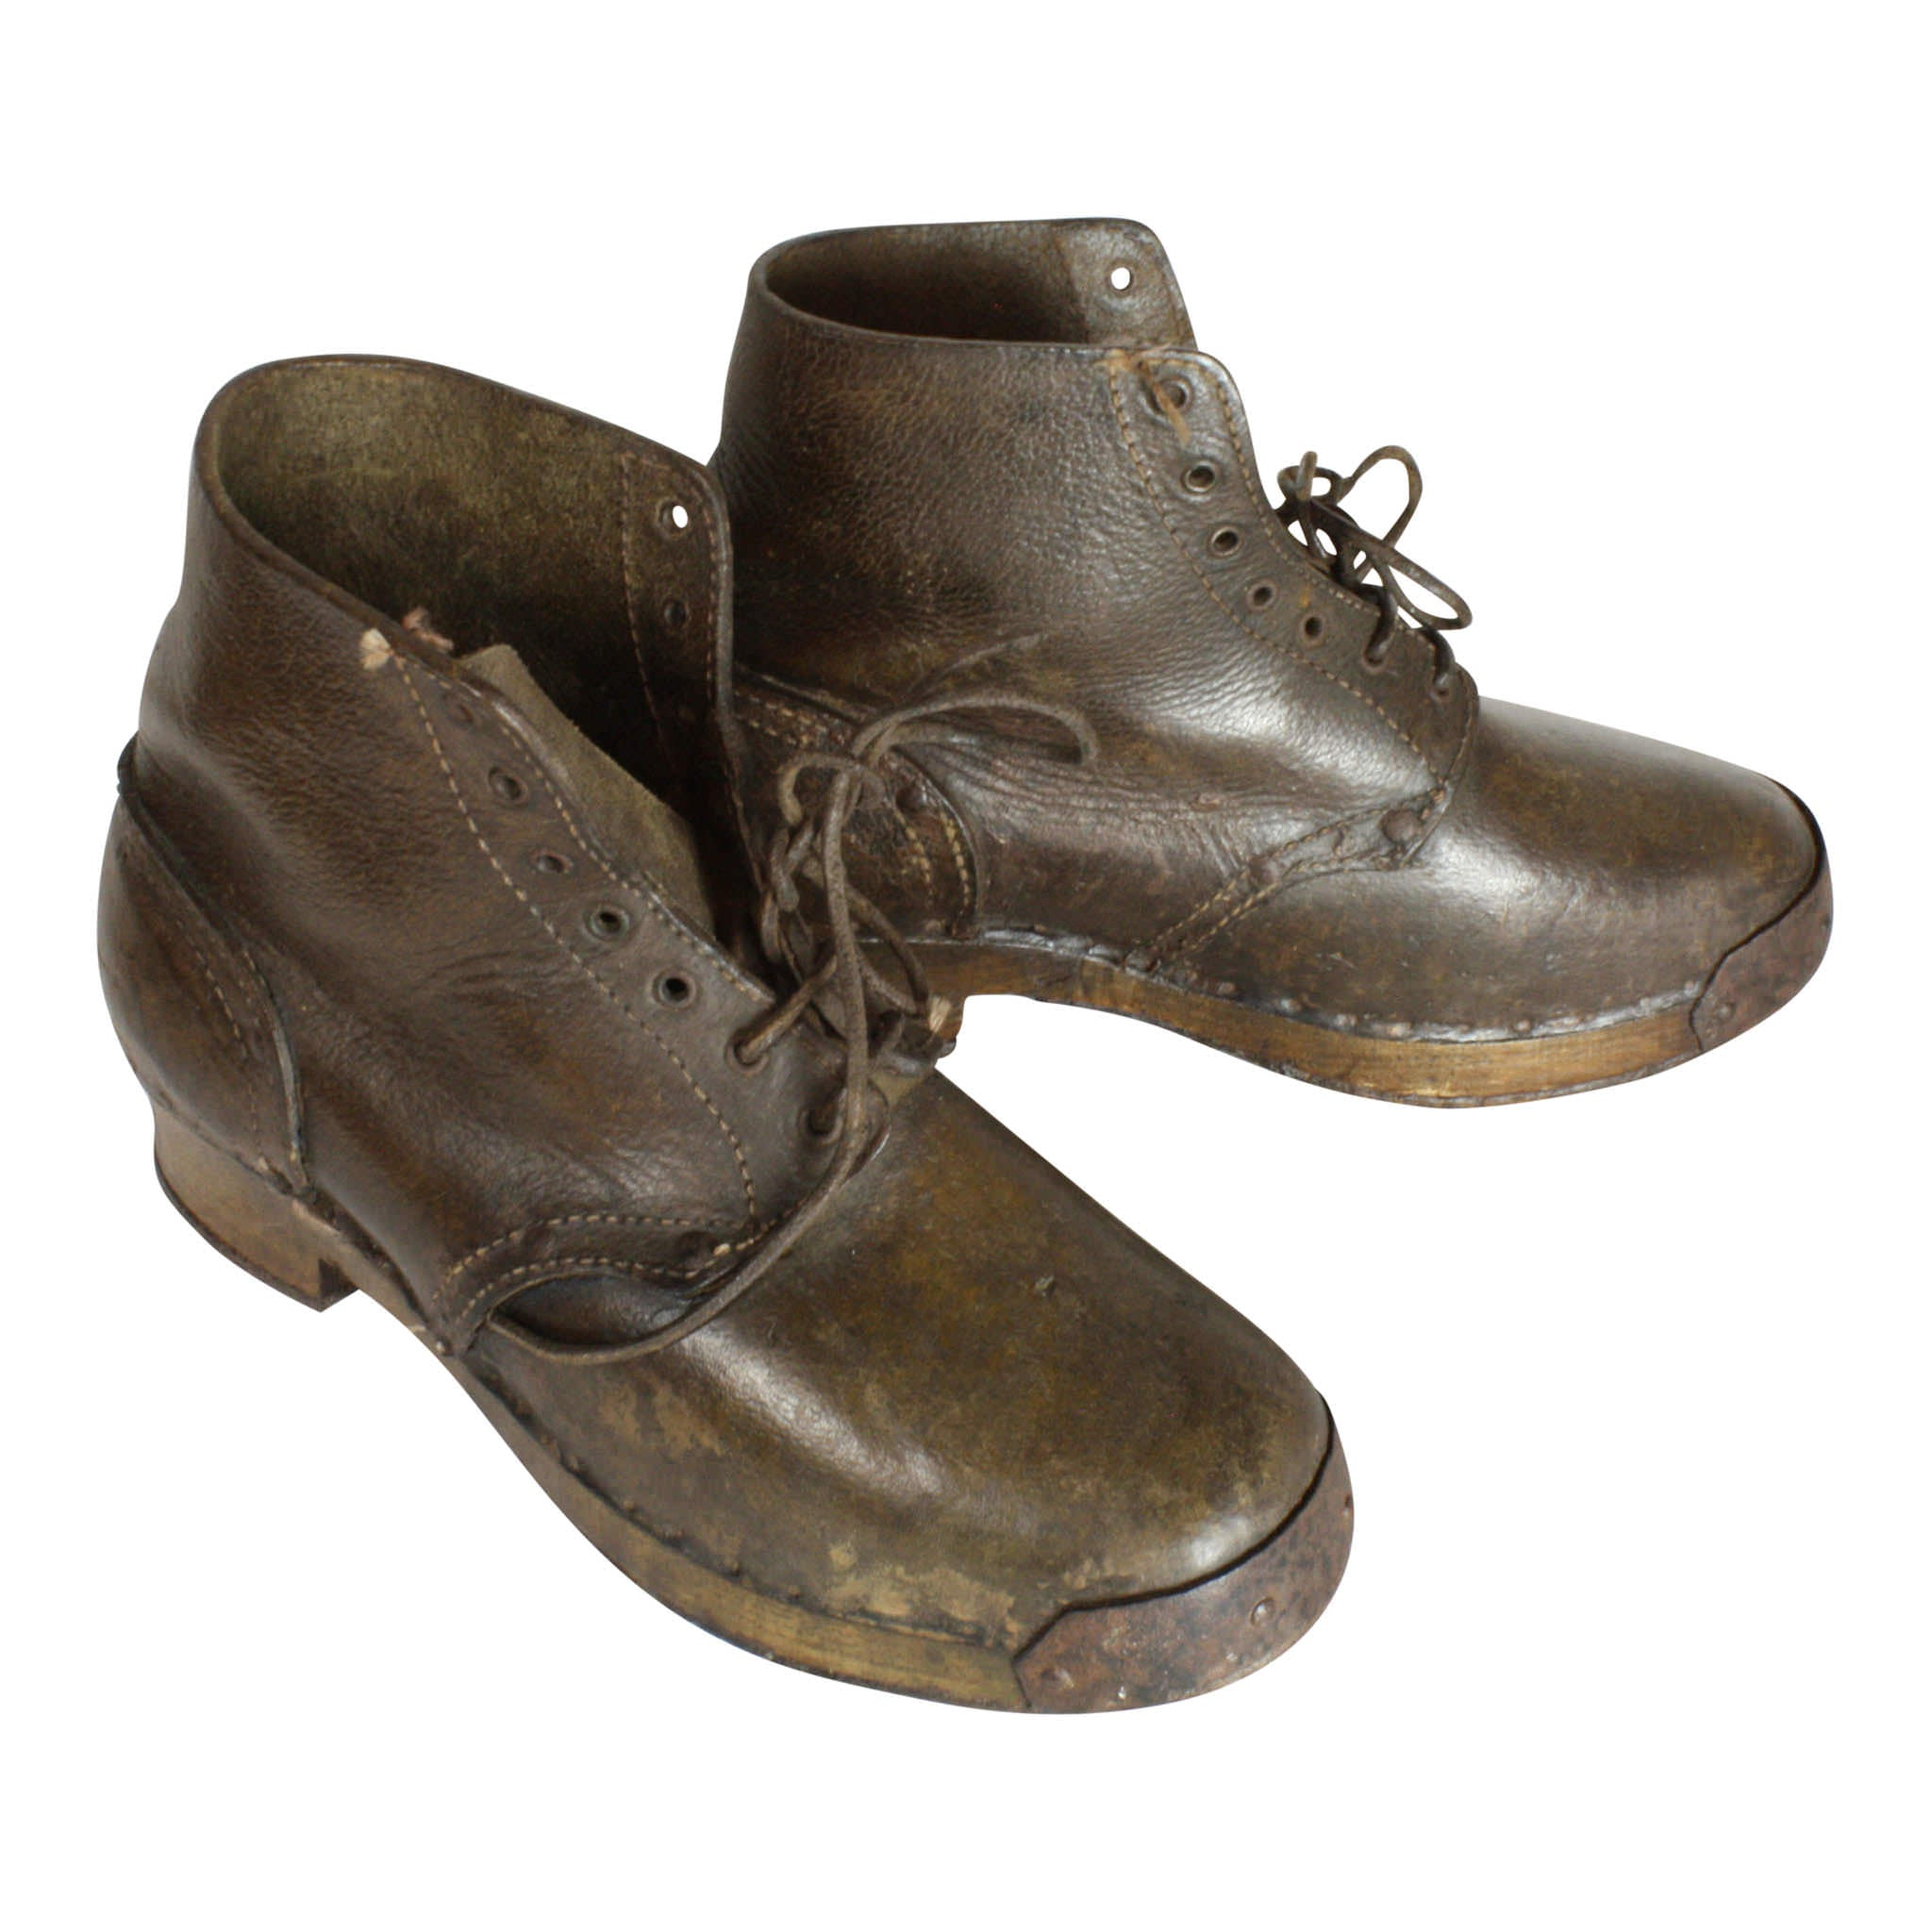 Leather Boots with Wooden Soles and Iron Cleats